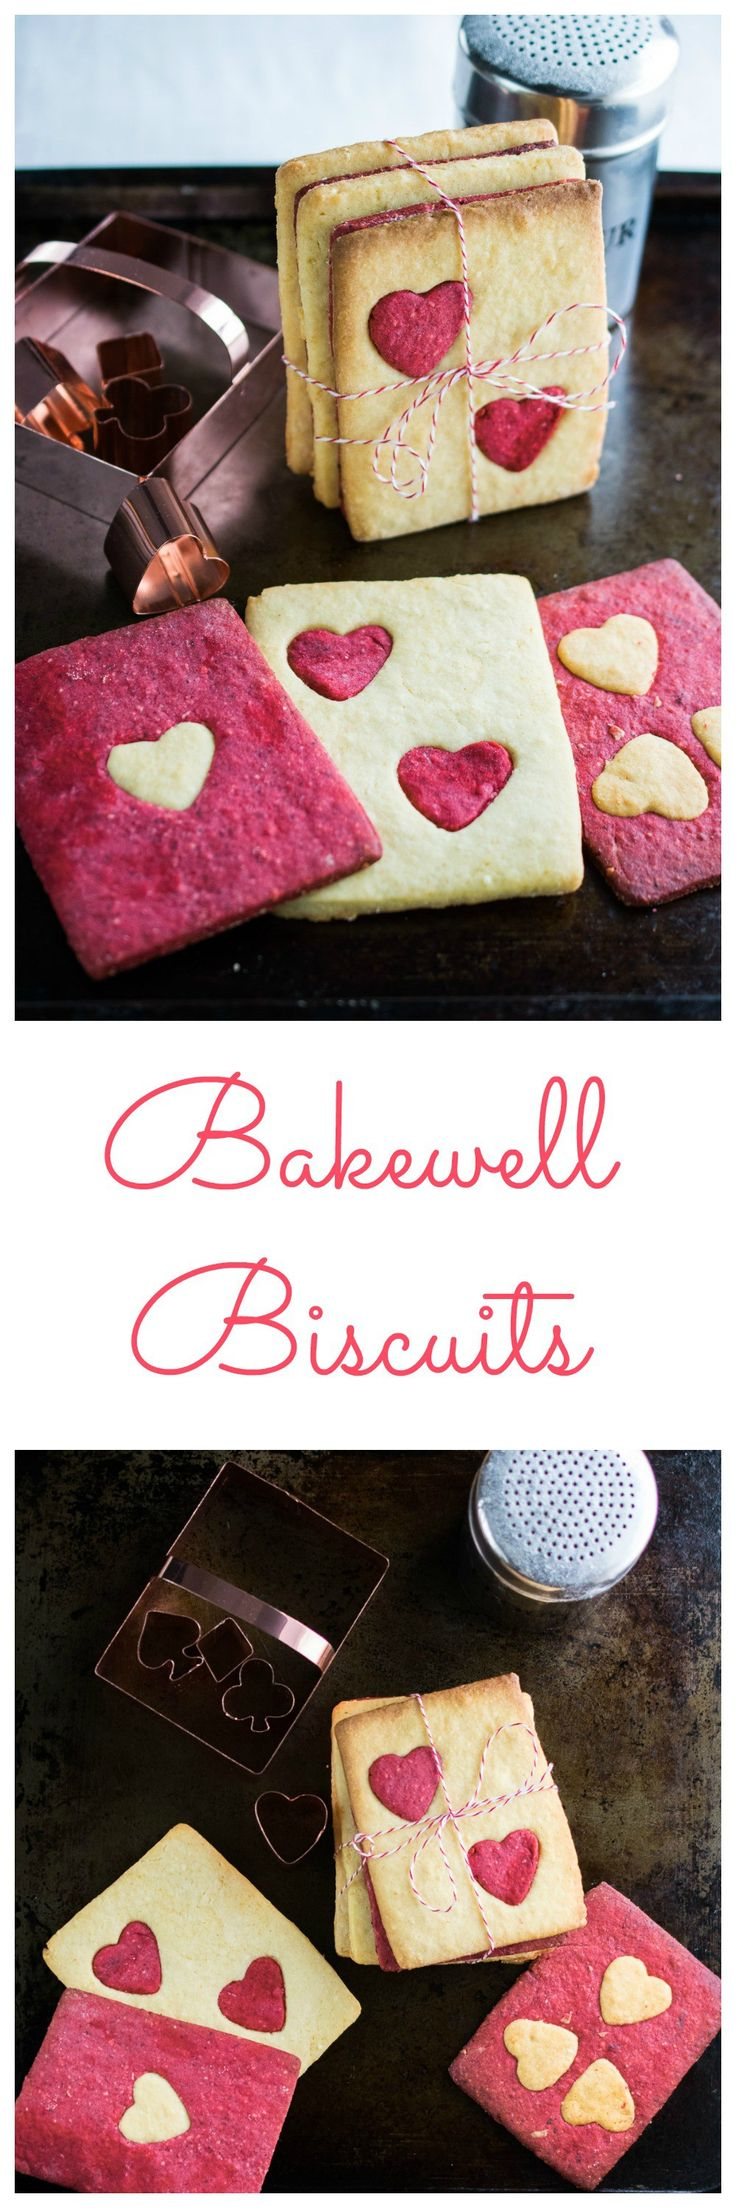 Bakewell Biscuits